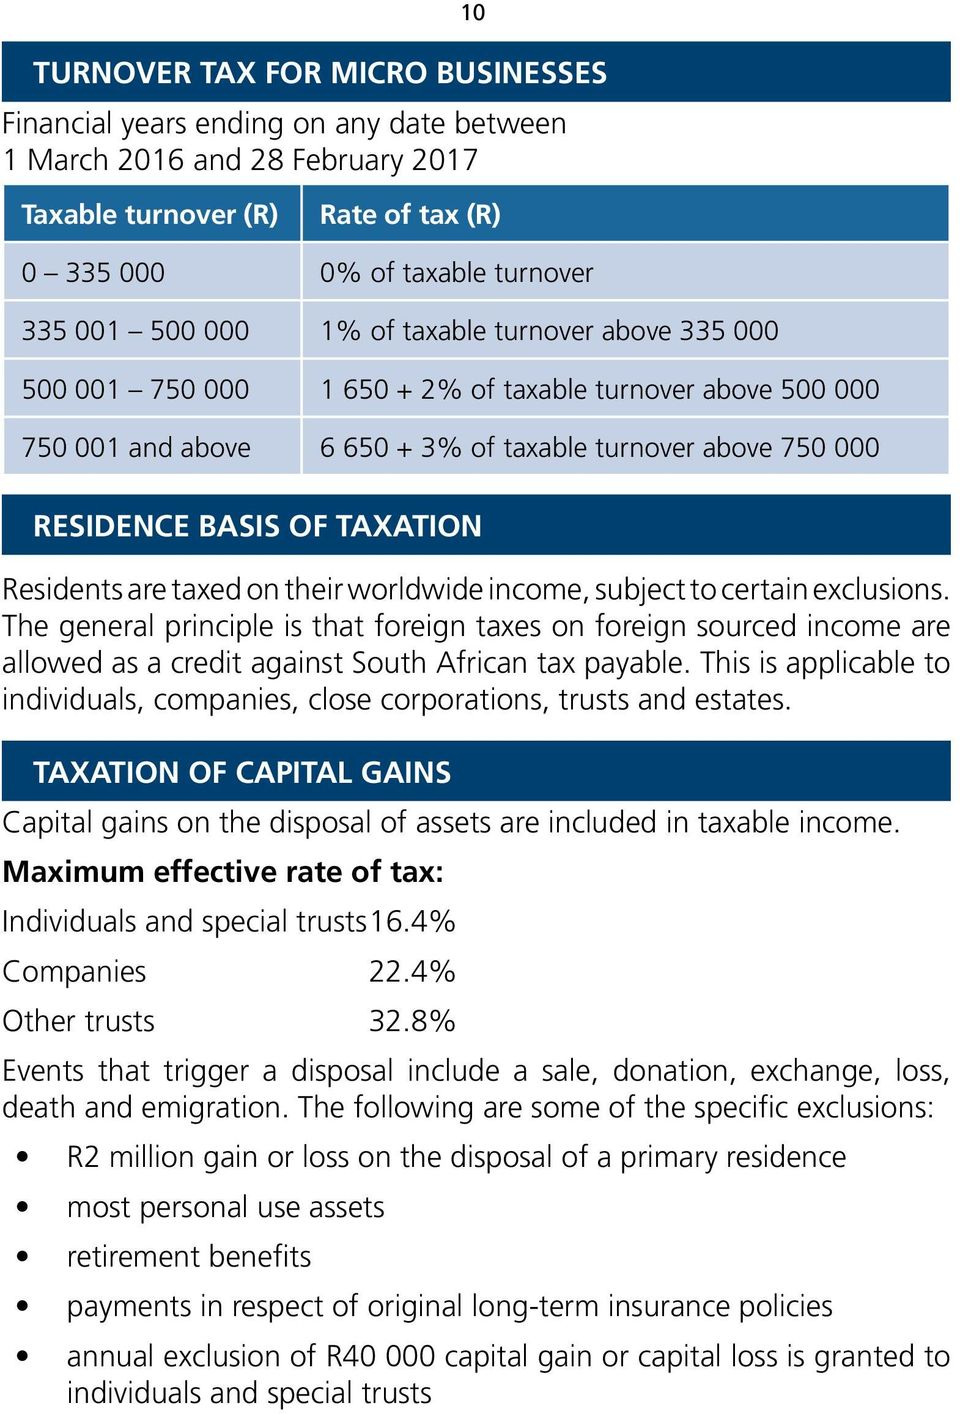 are taxed on their worldwide income, subject to certain exclusions. The general principle is that foreign taxes on foreign sourced income are allowed as a credit against South African tax payable.